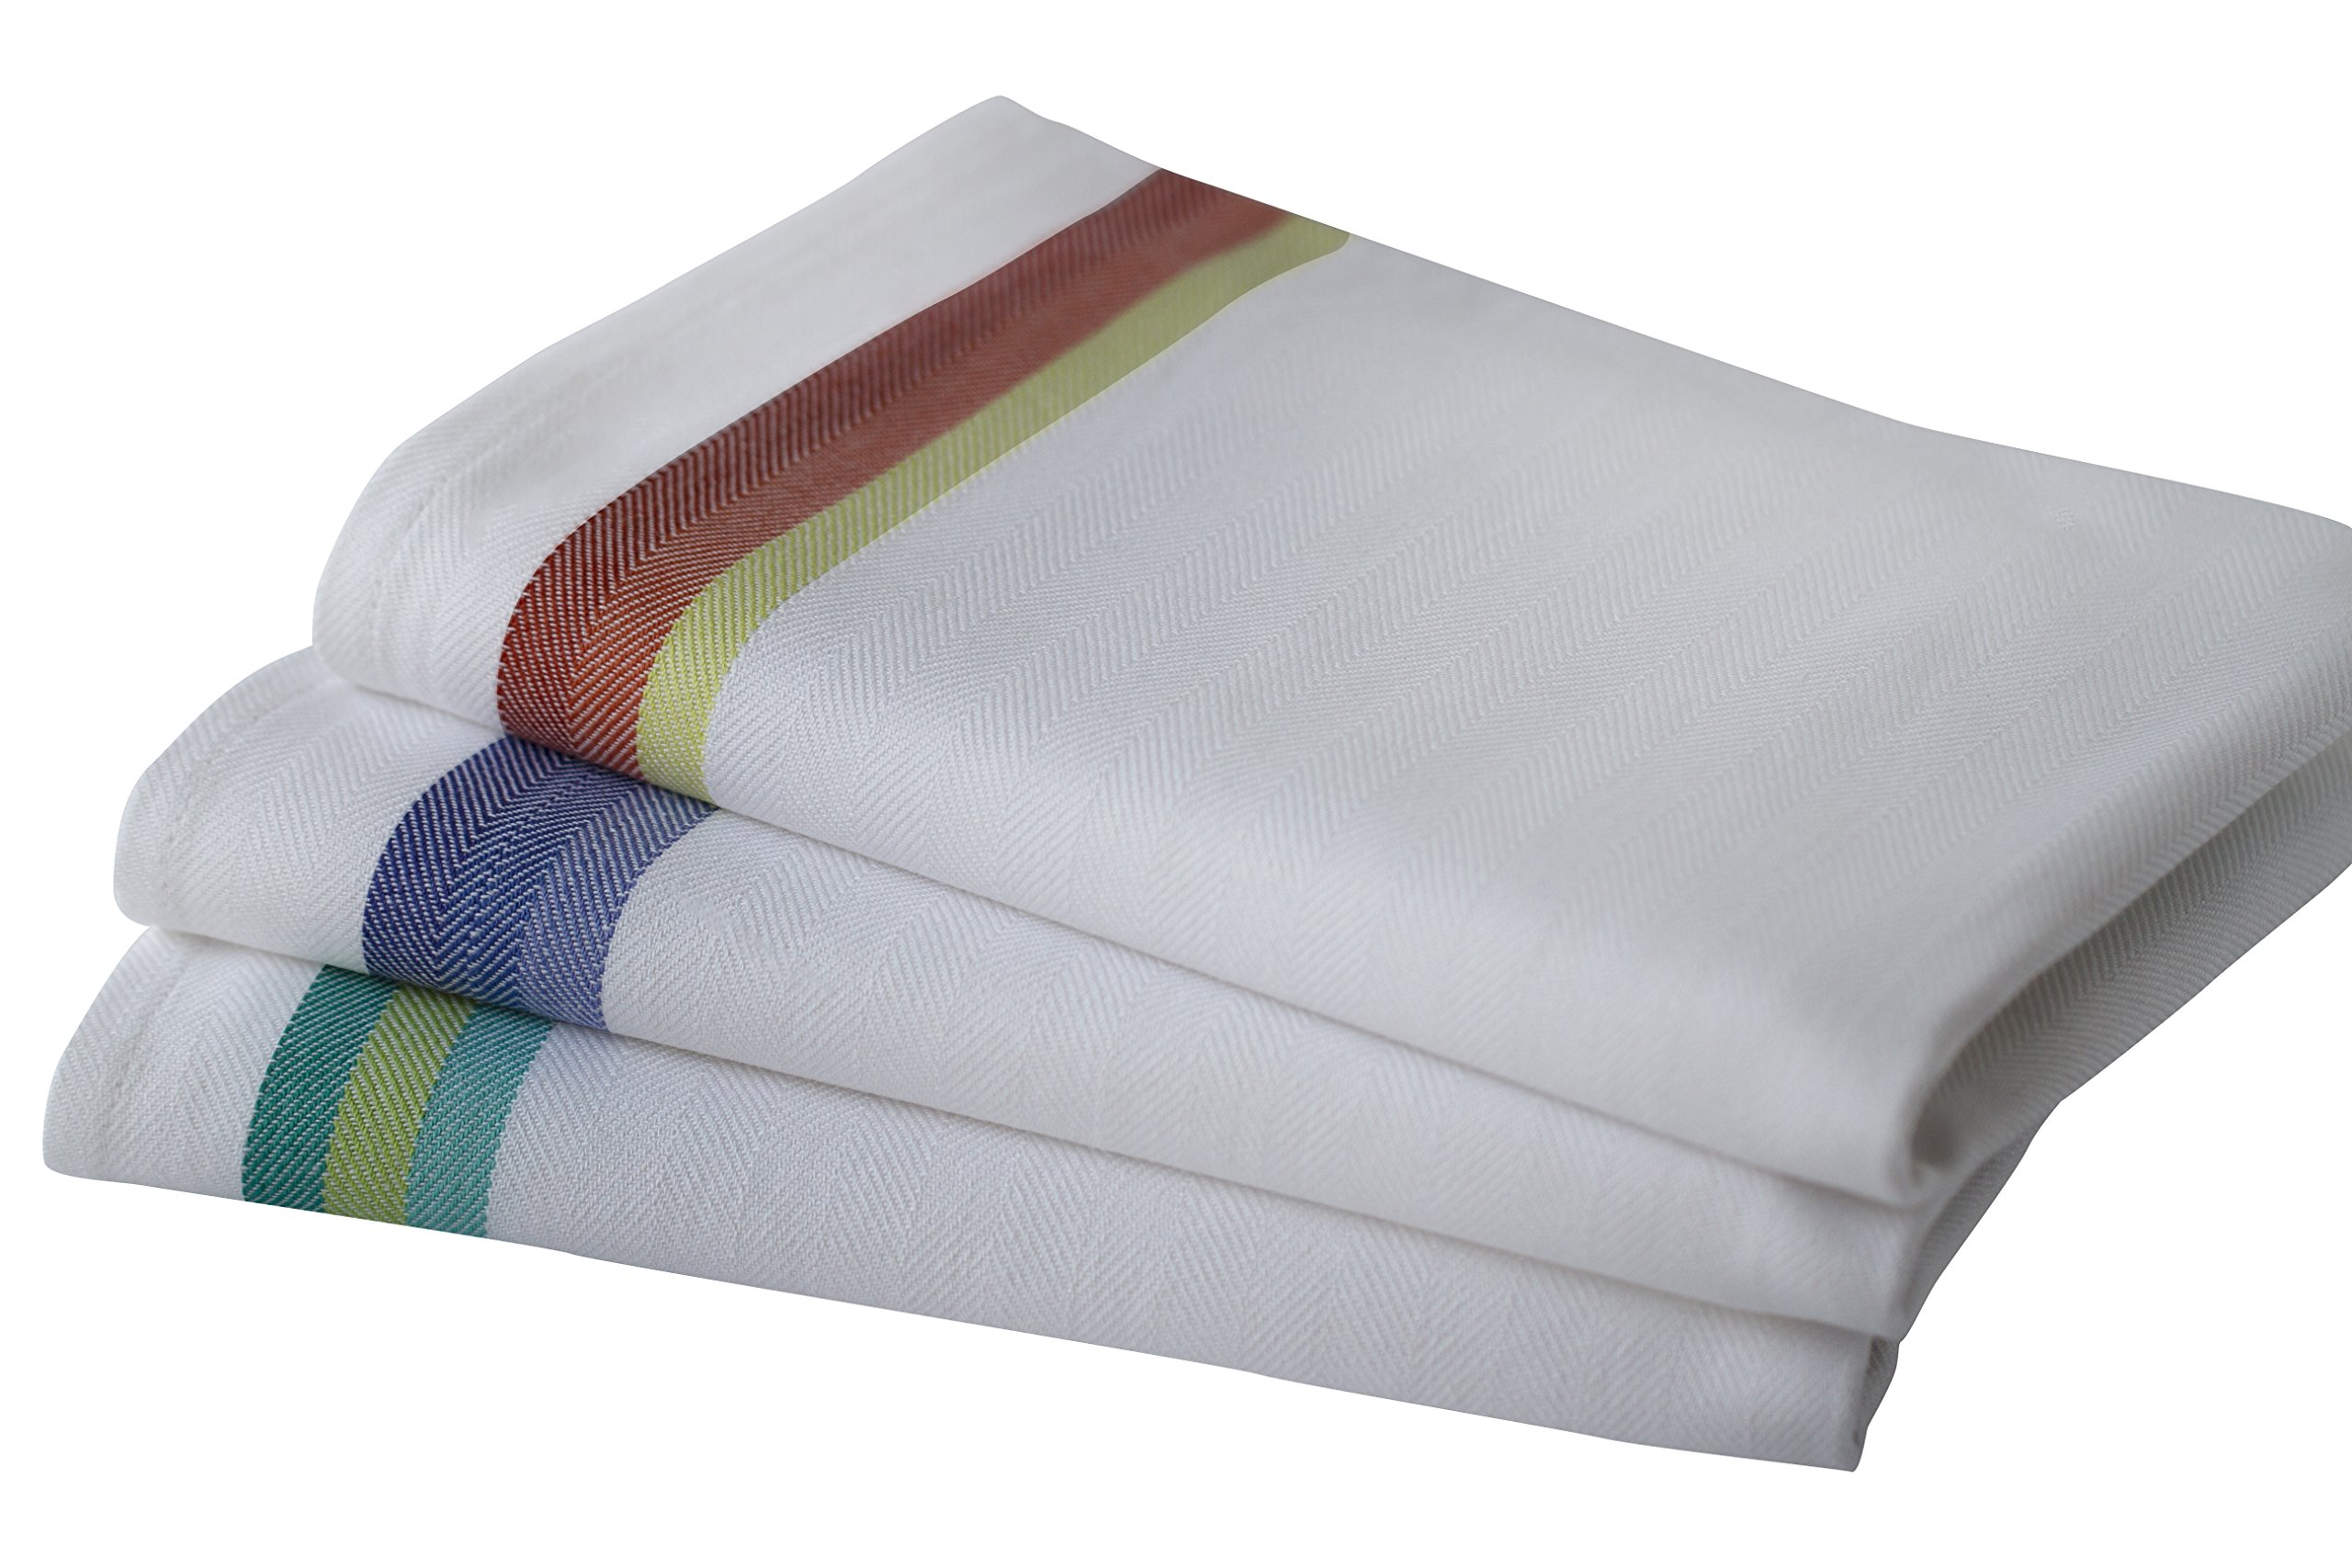 Kitchen Dish Towels set of 12-Tea Towels by Harringdons, 100% cotton. LARGE Dish Cloths 28''x20'' soft and absorbent. White with blue, green and red stripes, 4 of each. There's no substitute for QUALITY by Harringdons (Image #4)